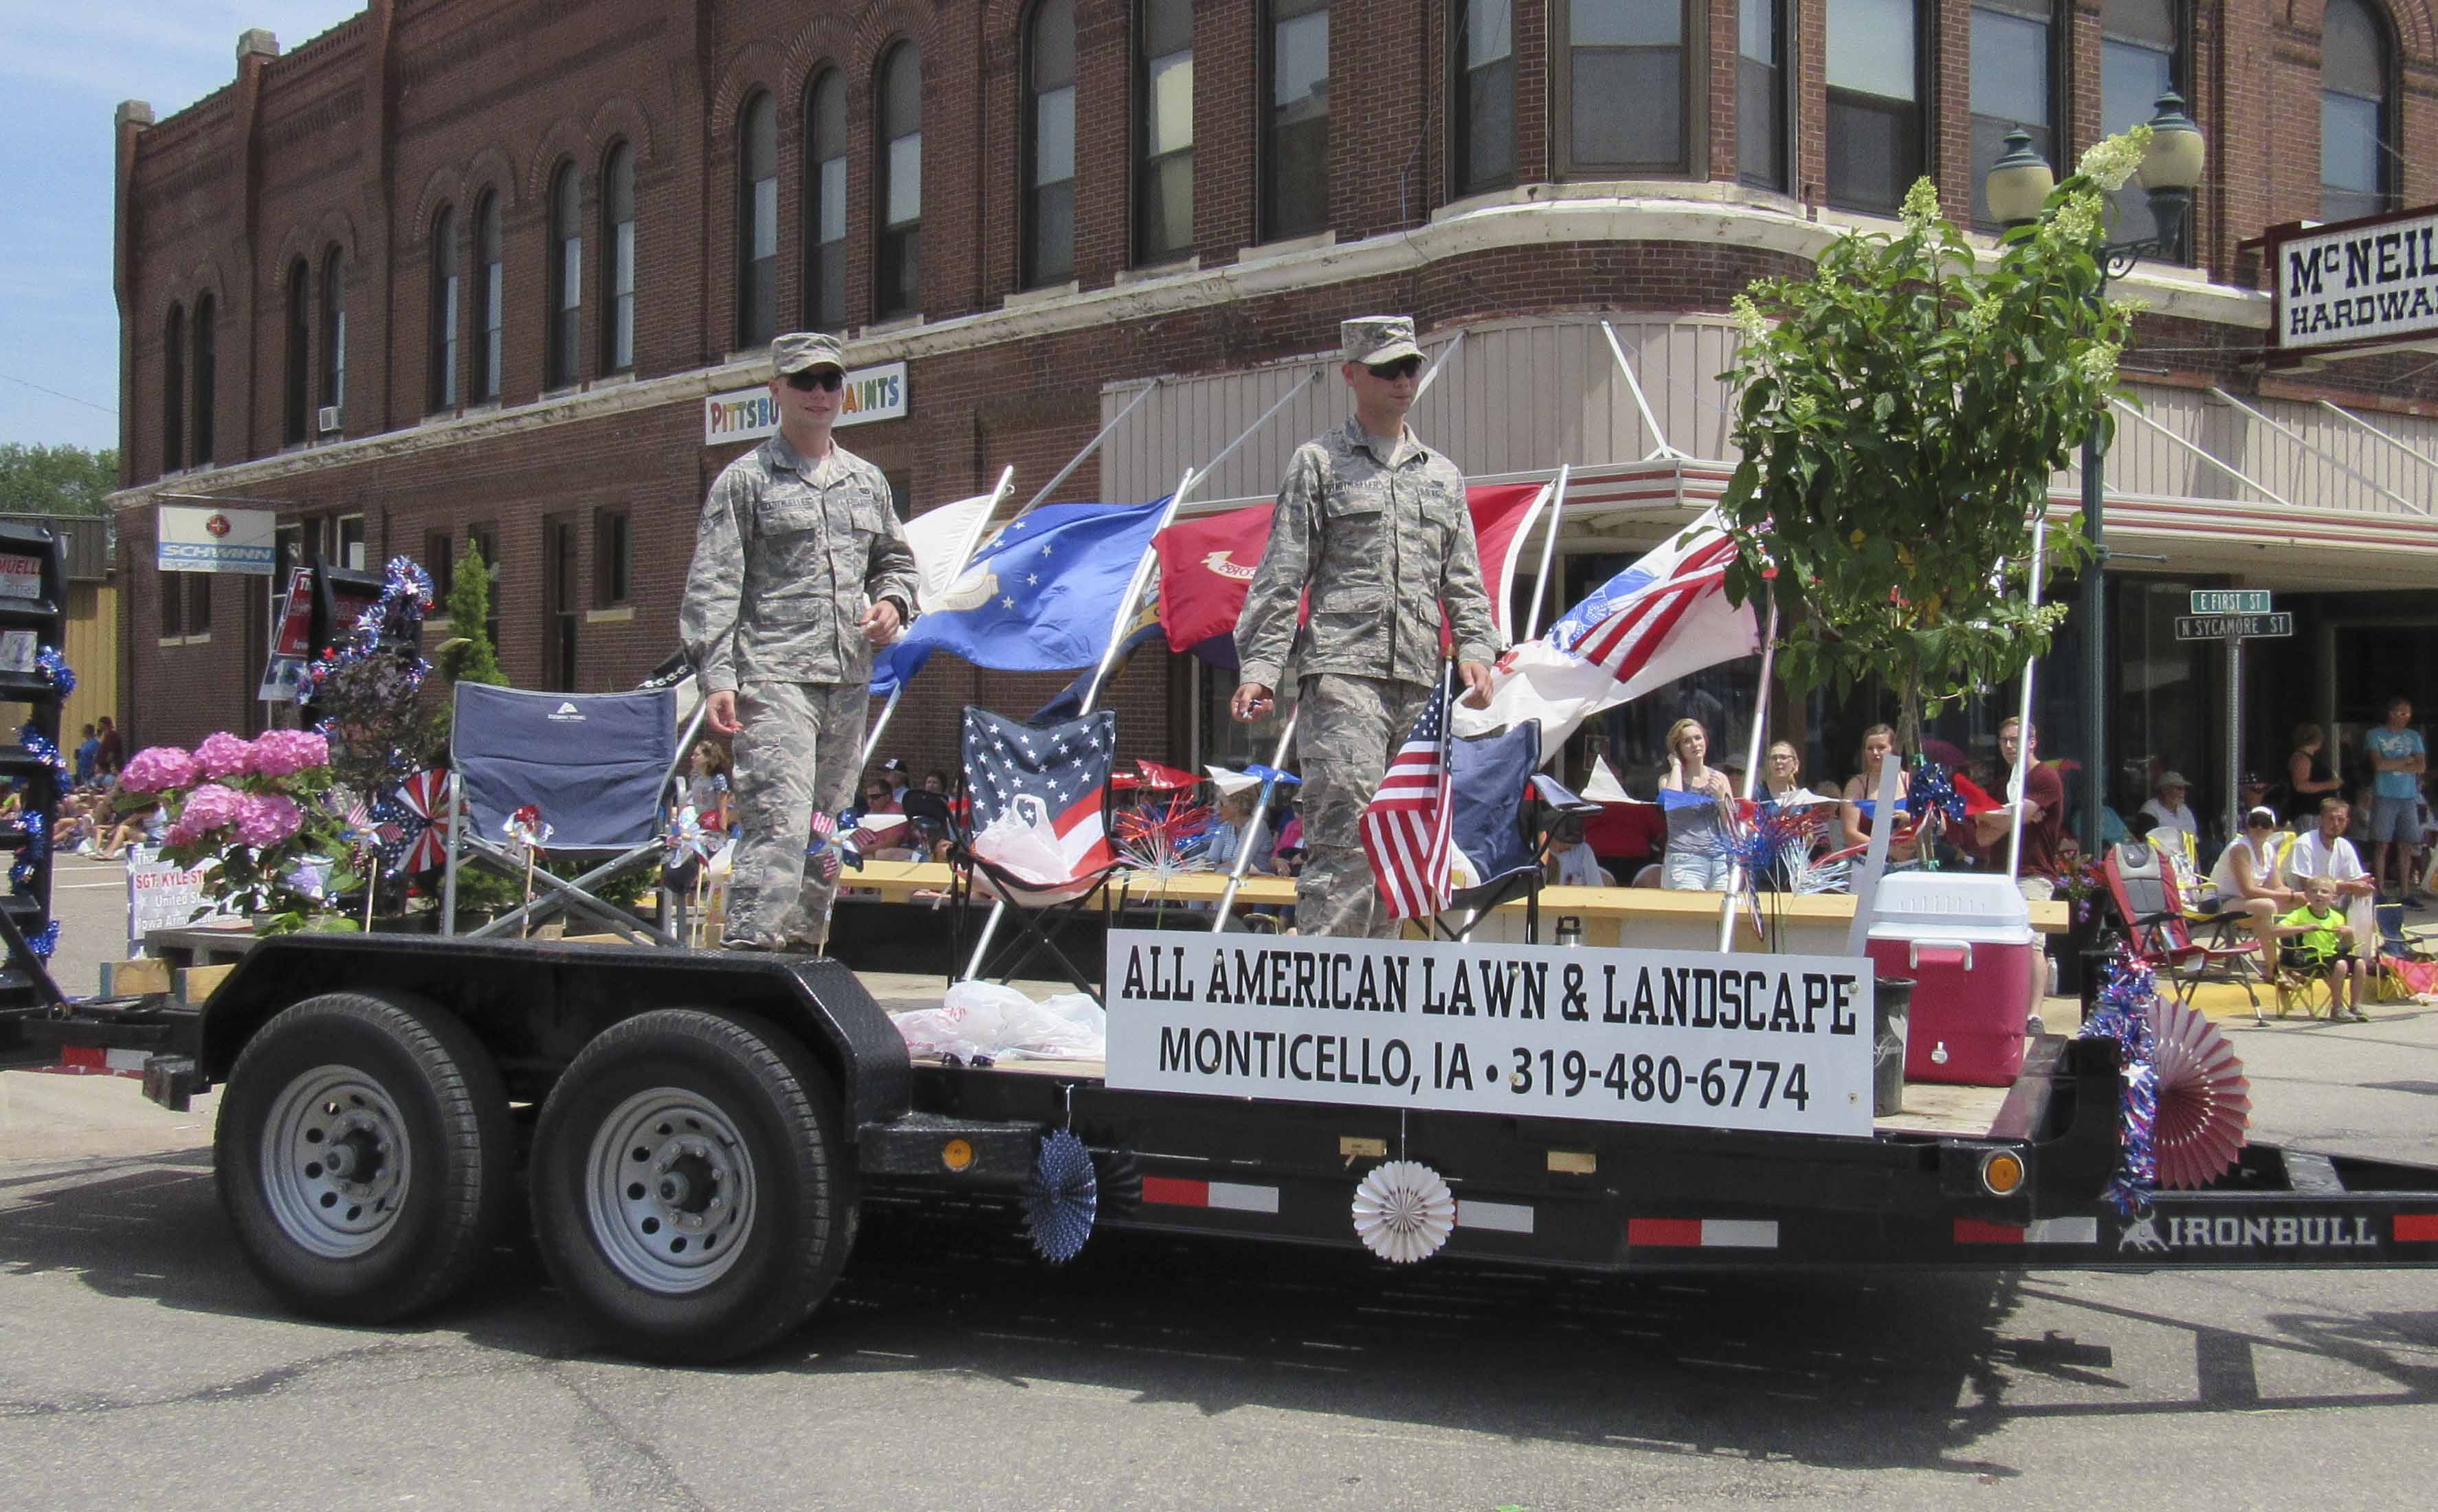 All American Lawn & Landscape owned by Kyle Stadtmueller, took home third place in the parade. Standing on the float are Stadtmueller's brothers Seth and Mitchell. (Photo by Kim Brooks)